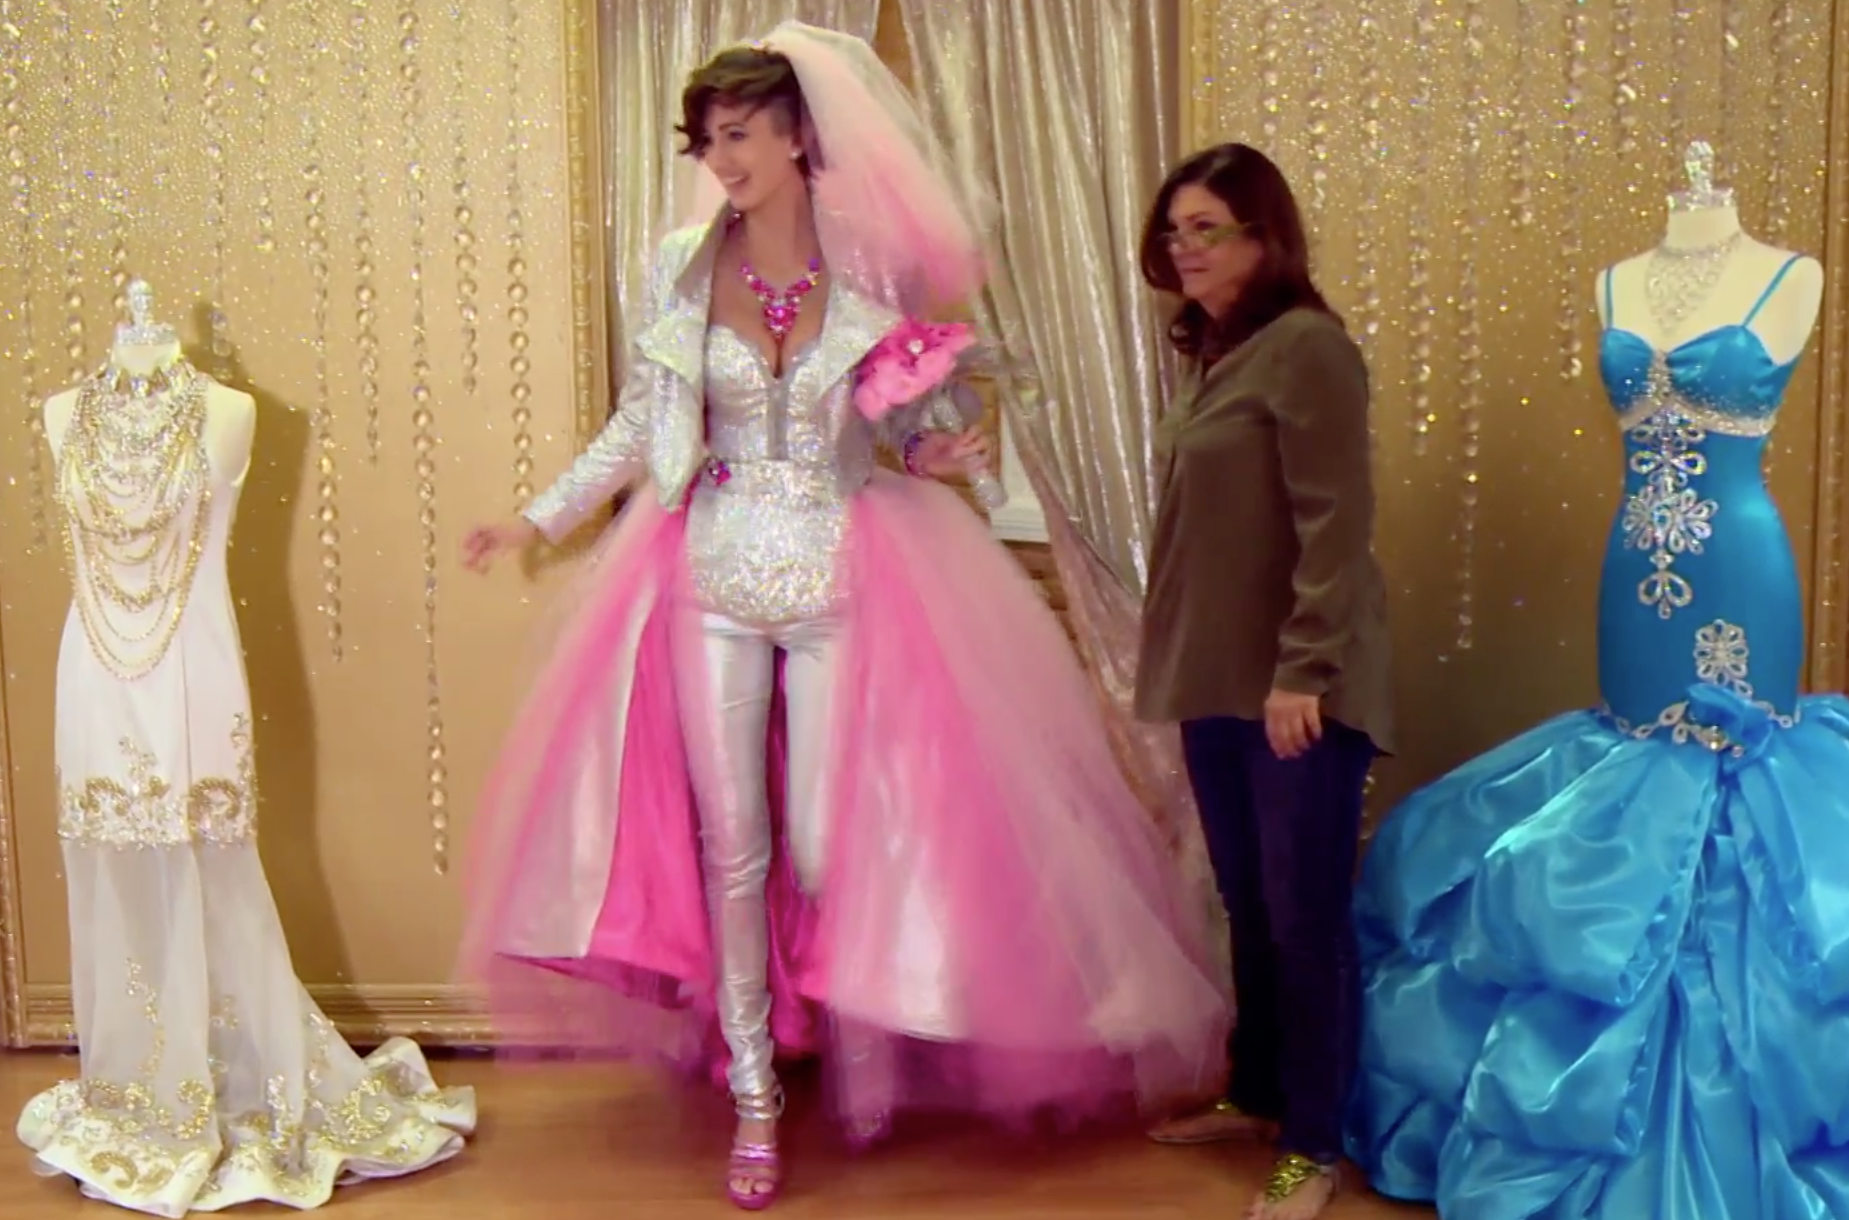 Pictures of gypsy wedding dresses